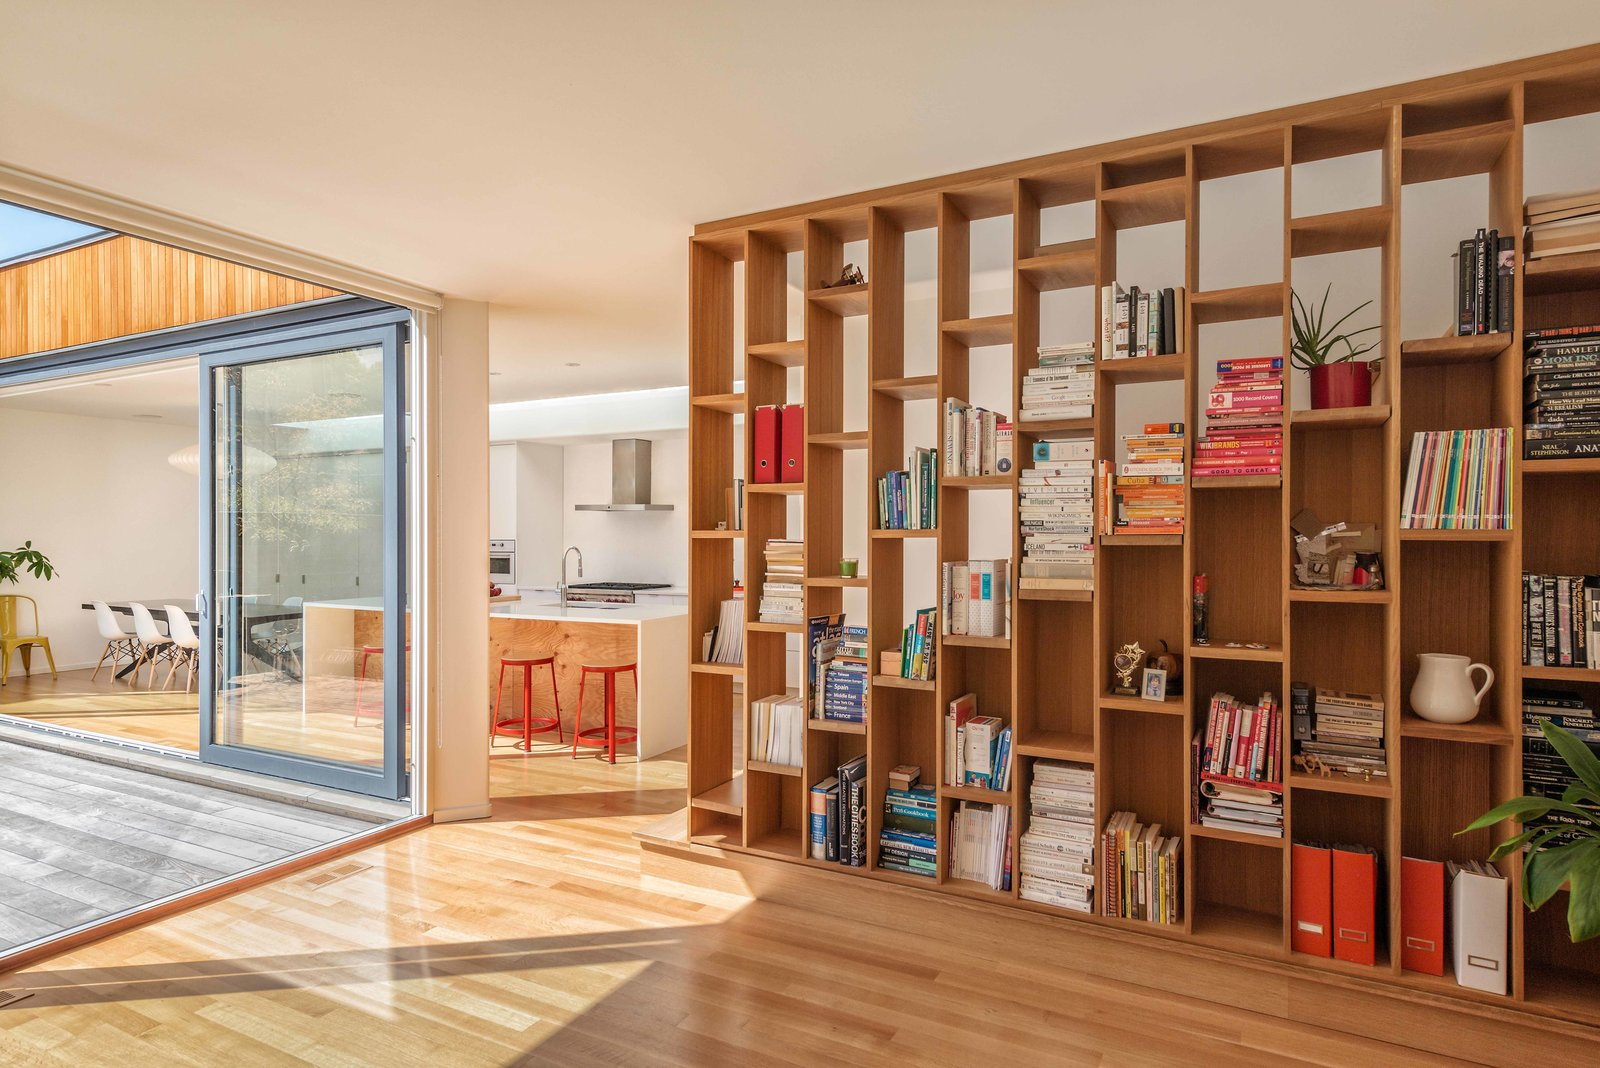 Adaptability is integral to supporting residents of various ages. Intelligent features, like millwork that can be removed to change the communal spaces' configurations, will enable the home to evolve with its occupants.  Photo 5 of 5 in One Big Idea for Driving Down Rocketing Housing Costs